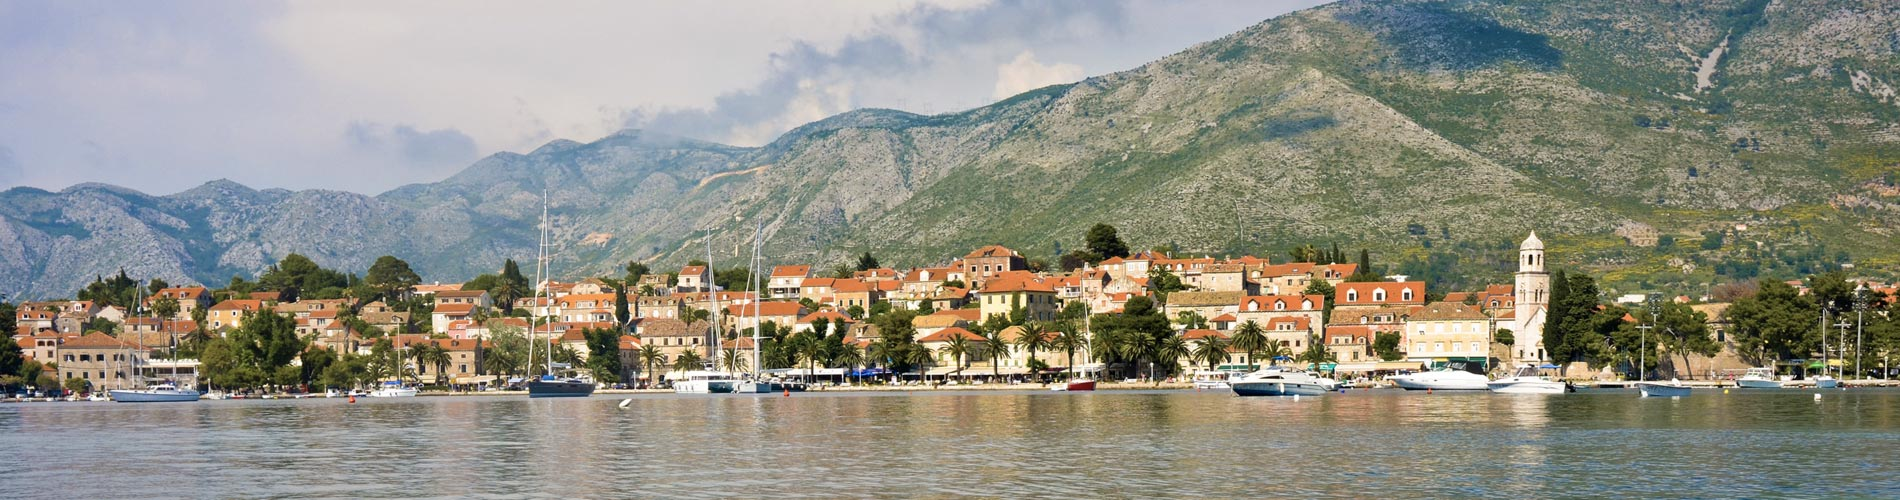 Cavtat panoramic.jpg